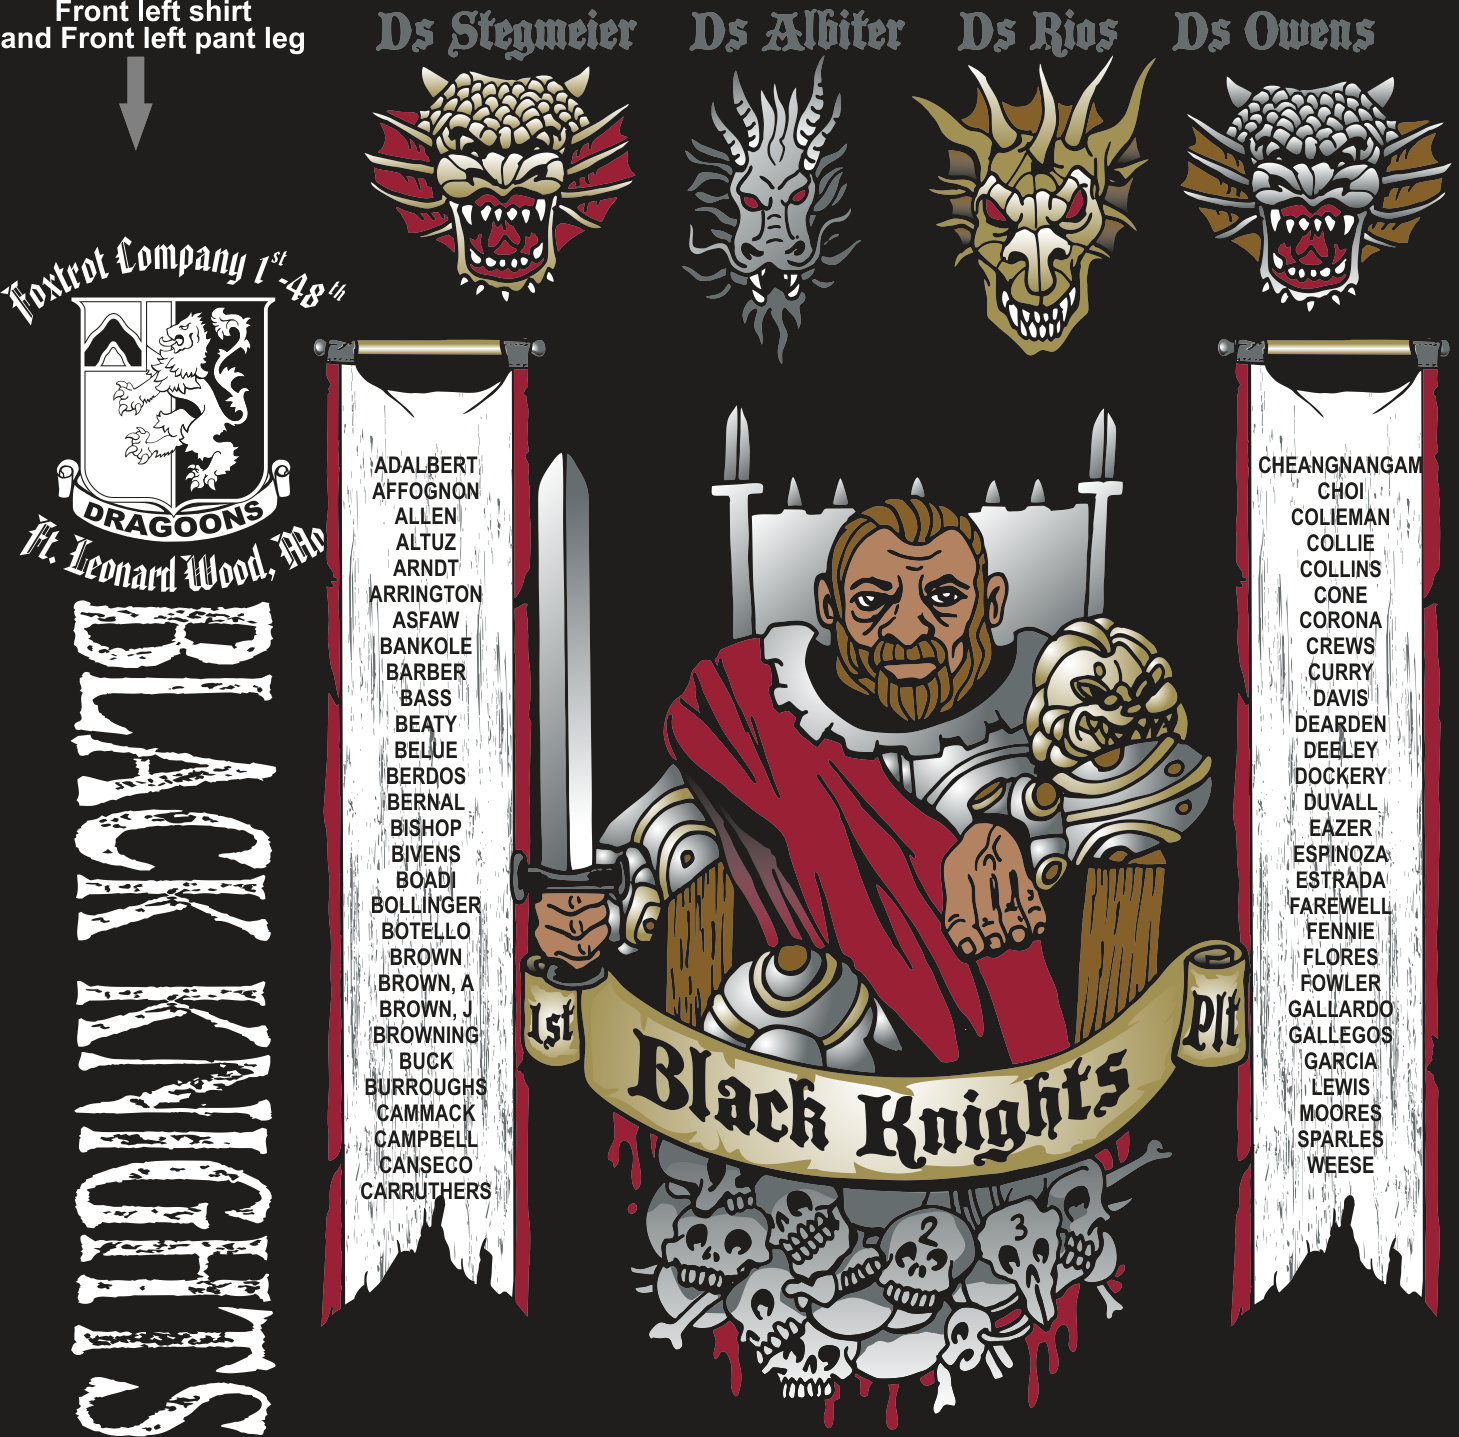 FOX 1-48 BLACK KNIGHT GRADUATING DAY 3-16-2017 digital